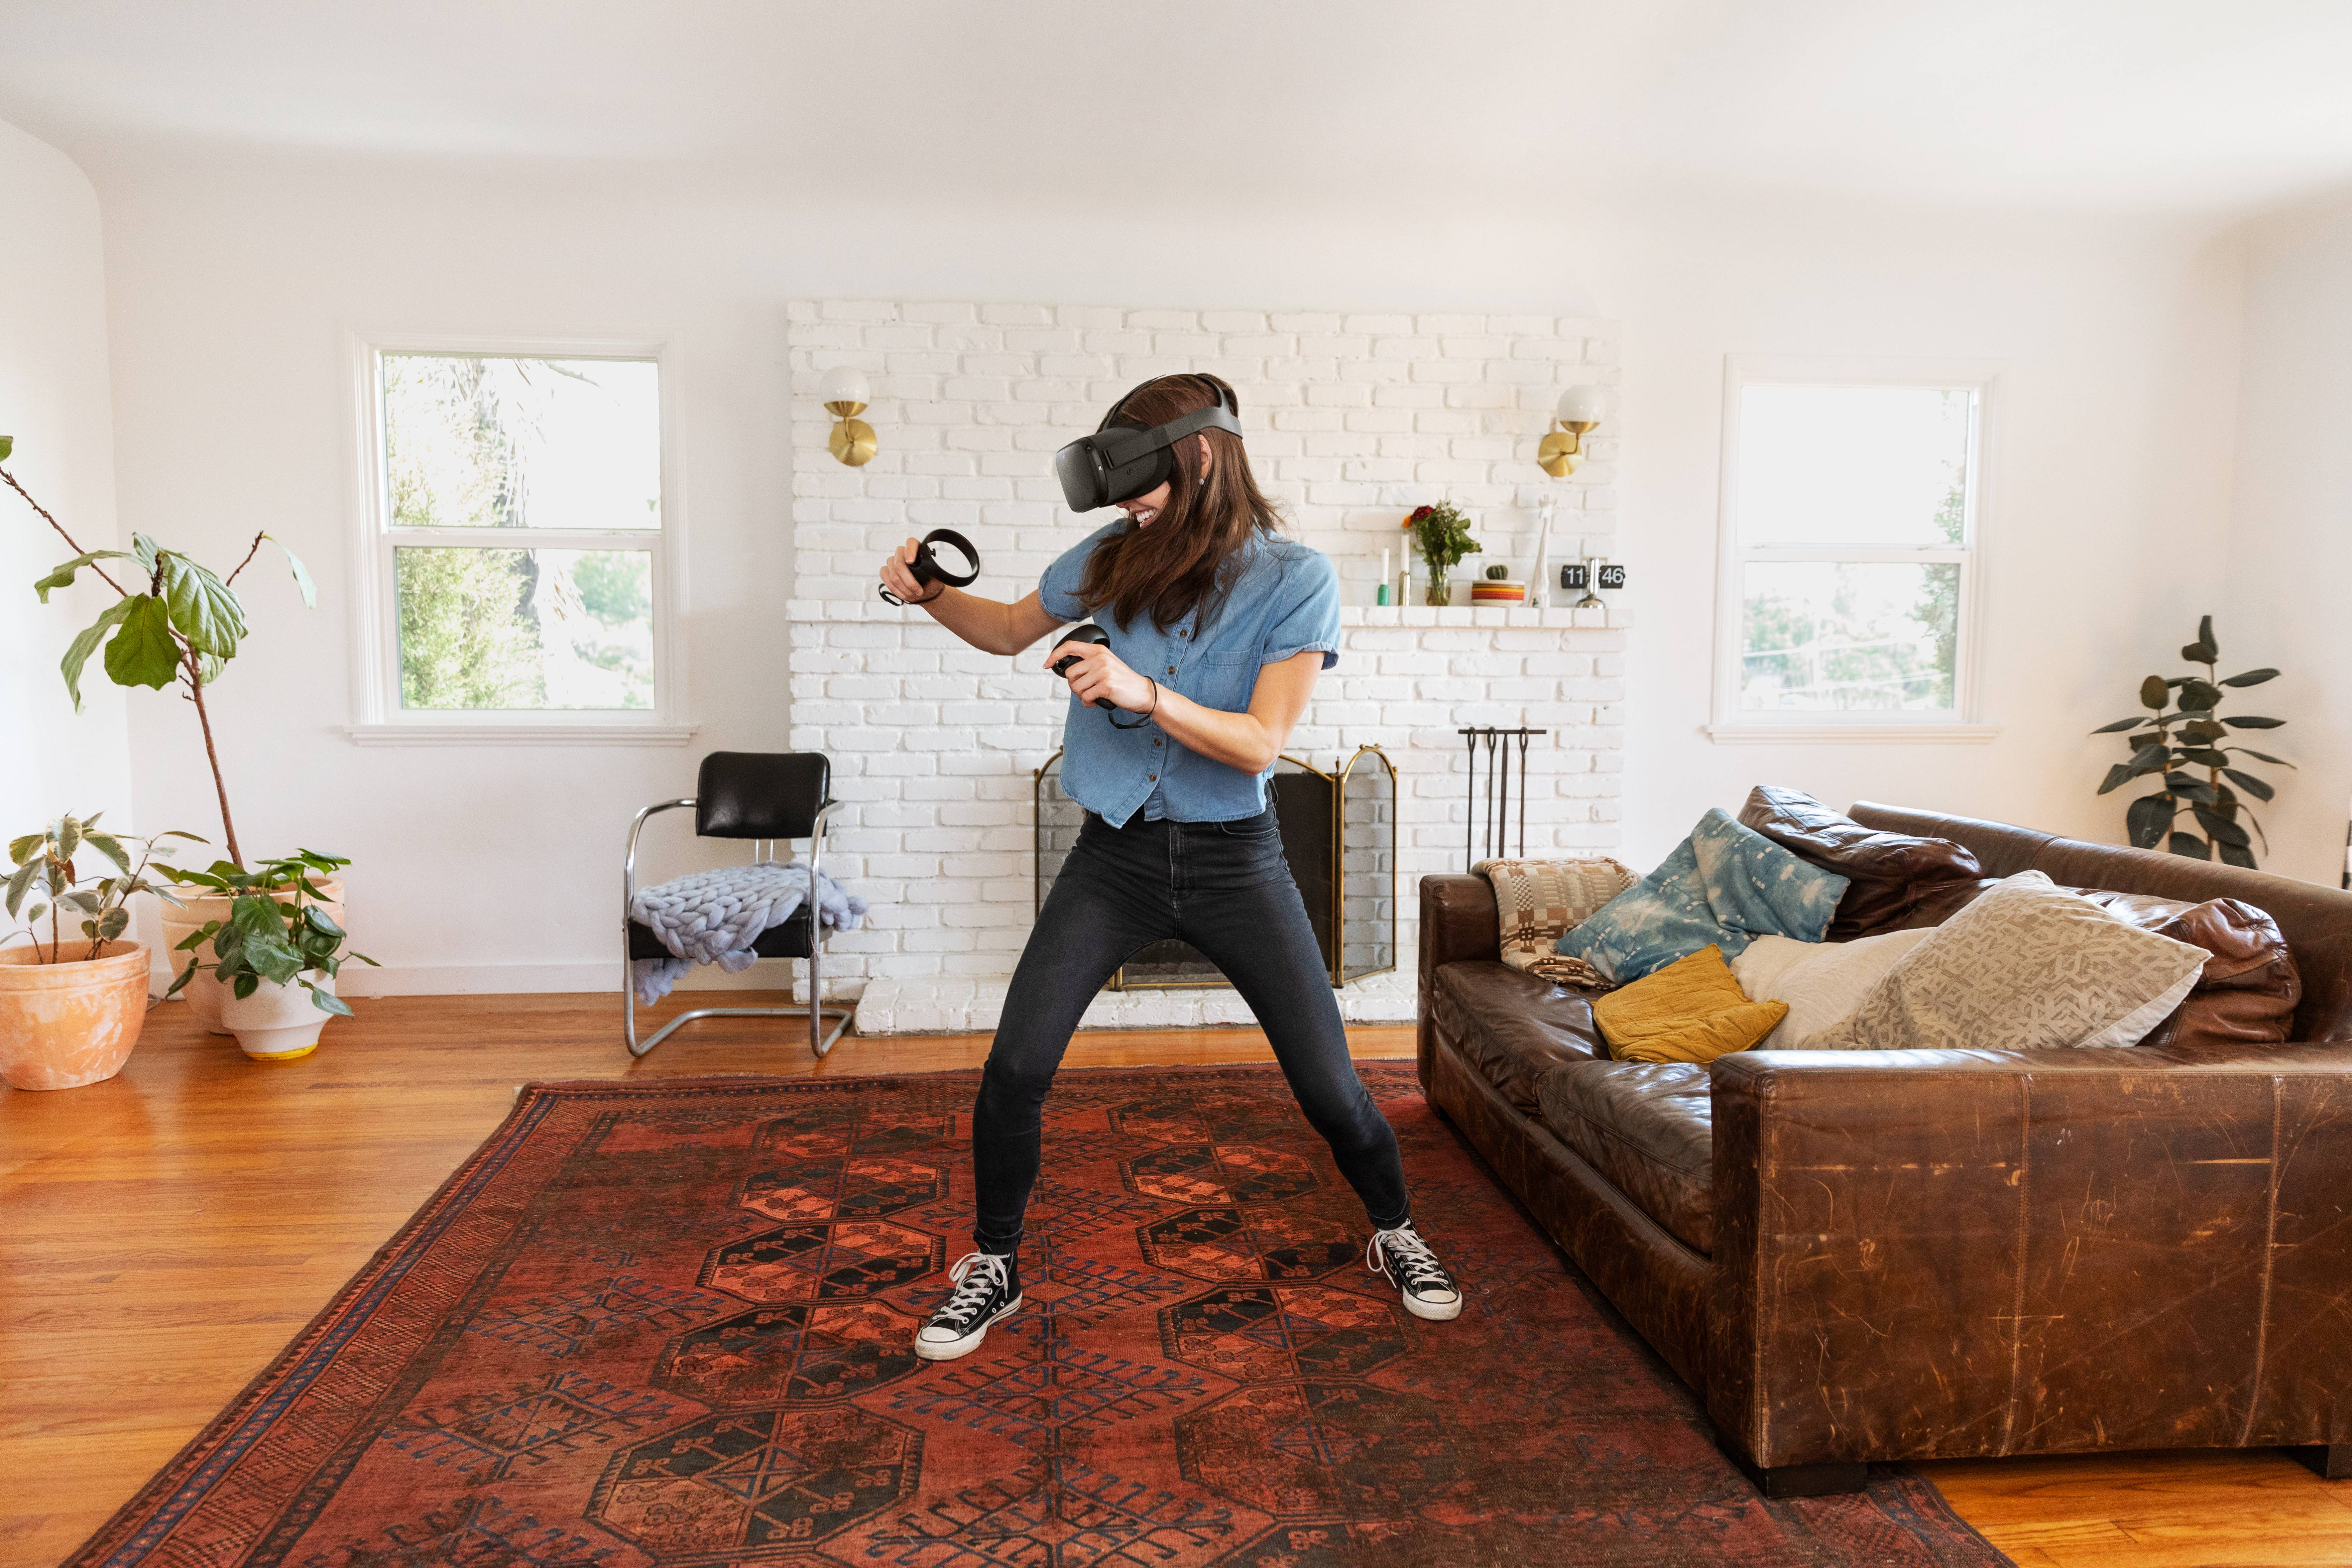 Oculus Quest Has Great VR Gaming Without Wires | Fortune